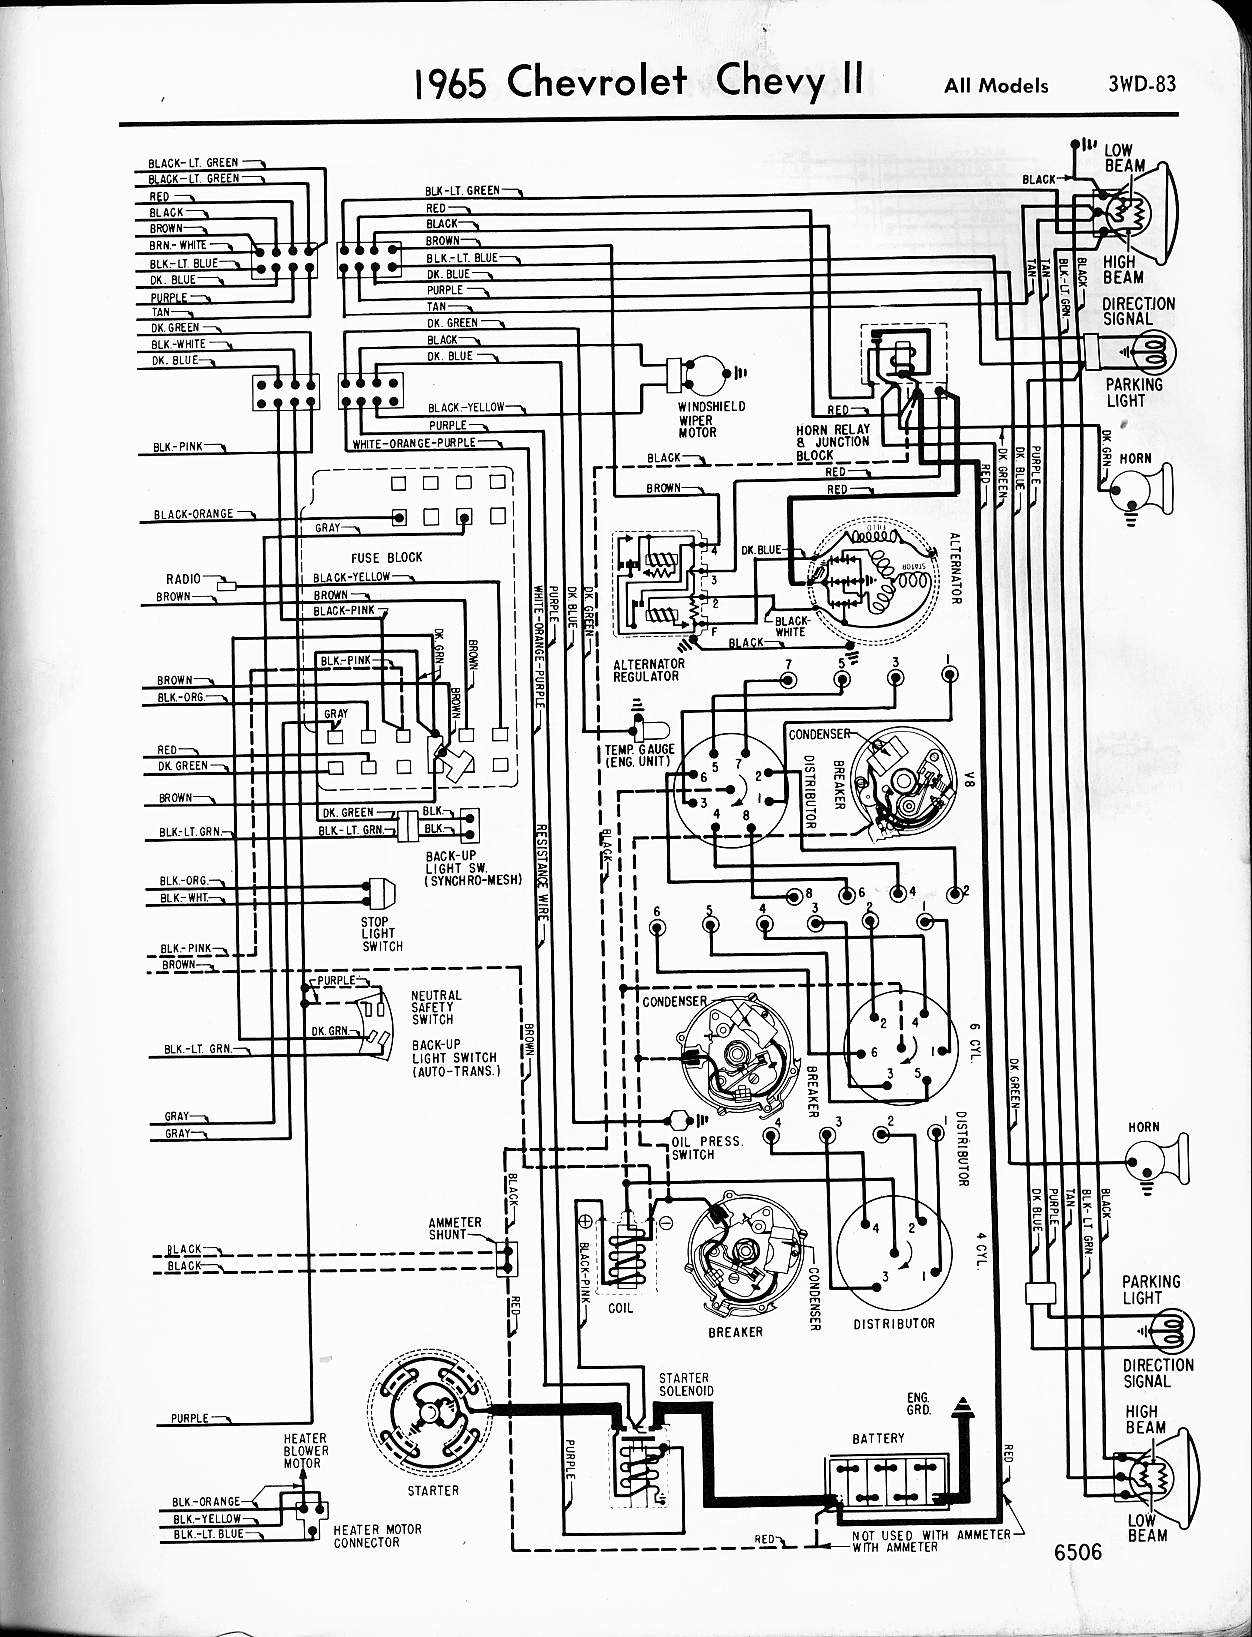 MWireChev65_3WD 083 57 65 chevy wiring diagrams 1966 chevy impala wiring diagram at reclaimingppi.co